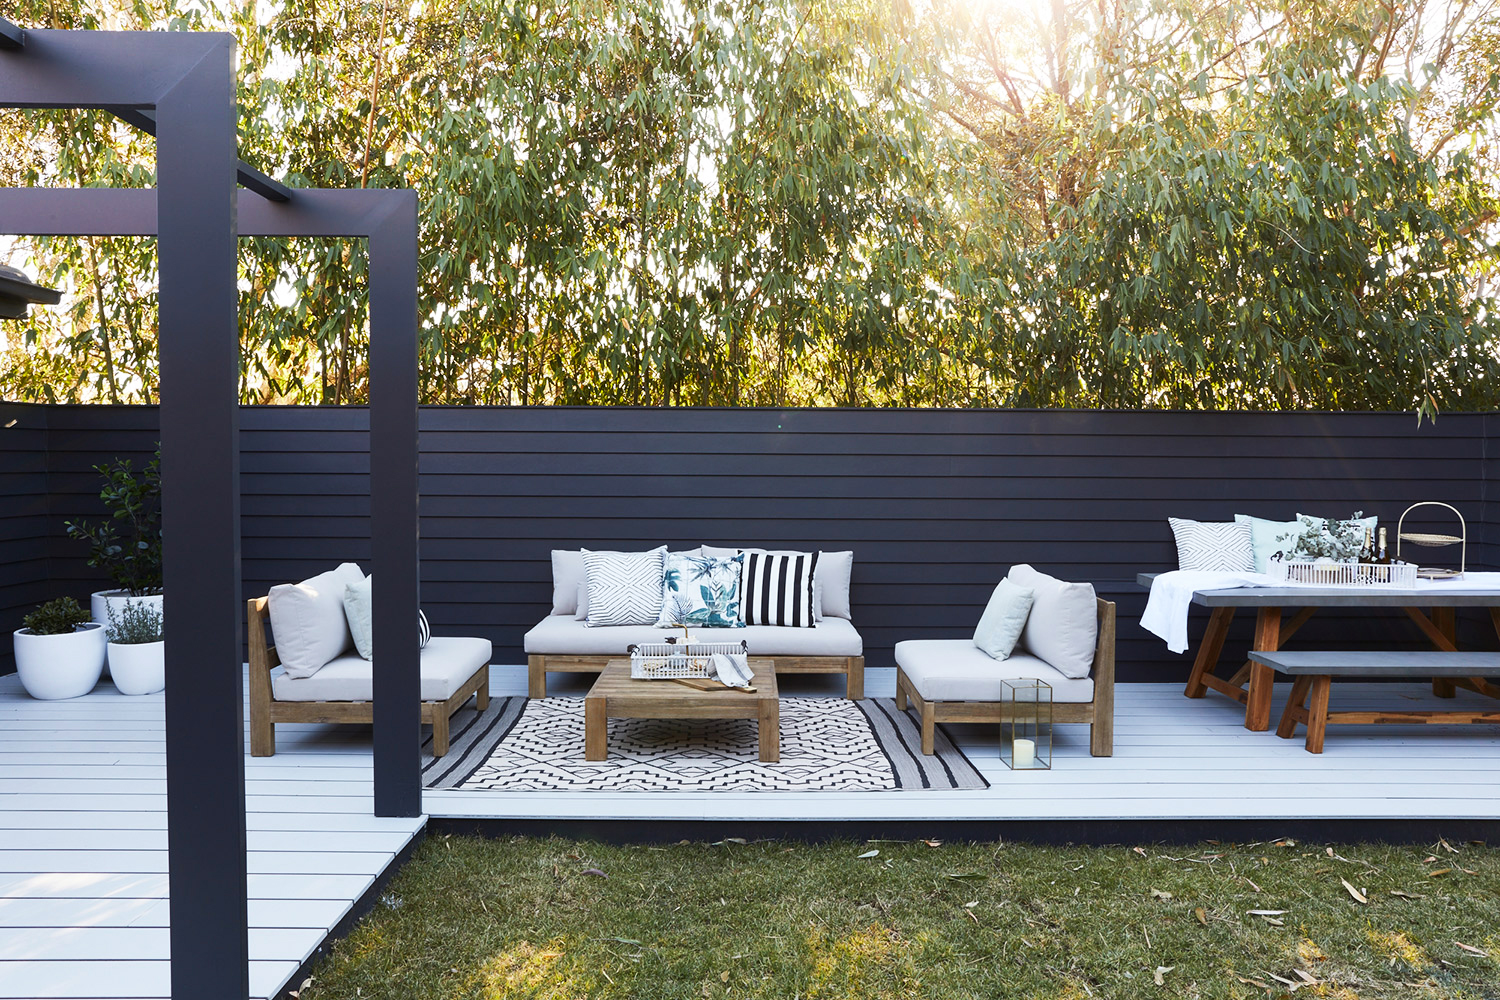 3 ESSENTIALS FOR THE ULTIMATE ALFRESCO OASIS